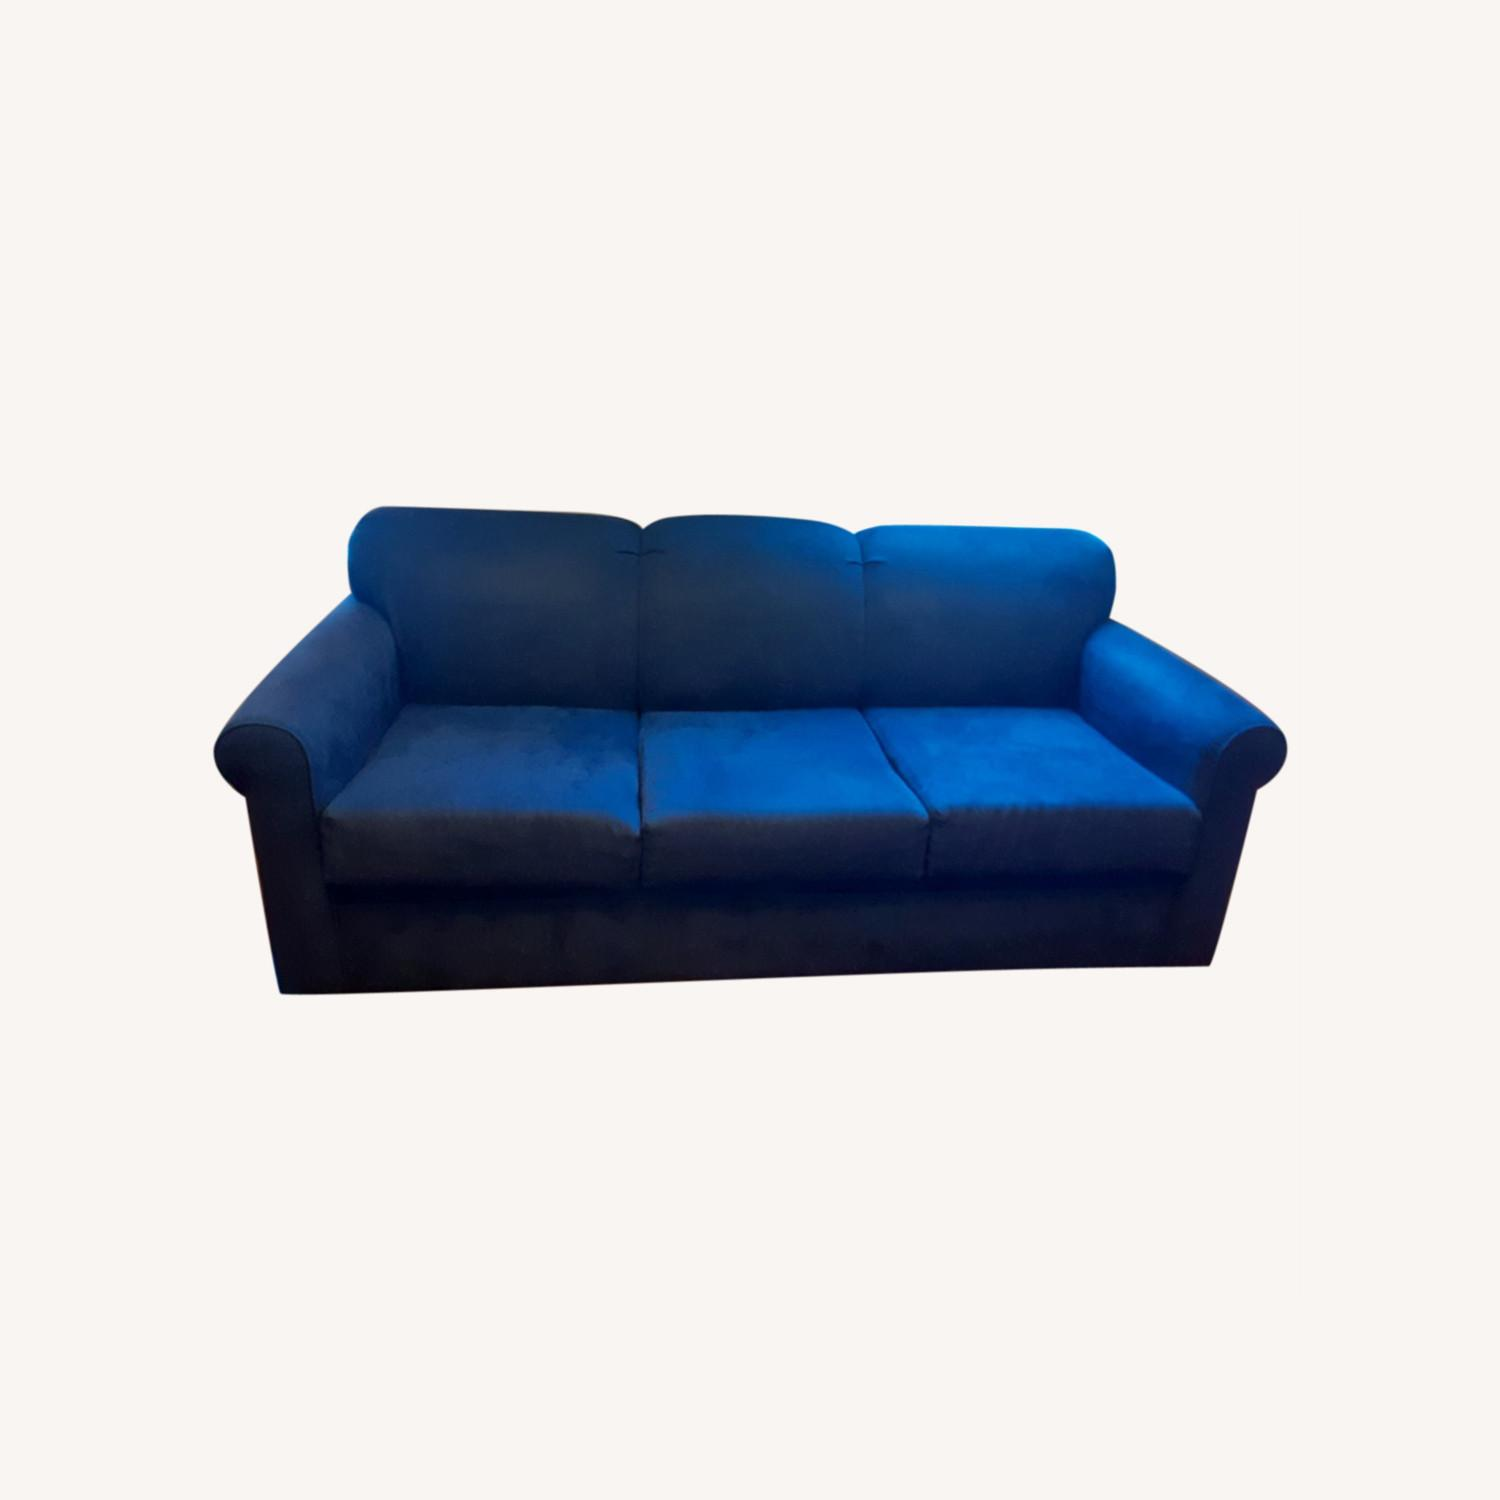 Queen Size Sofa Bed - image-0